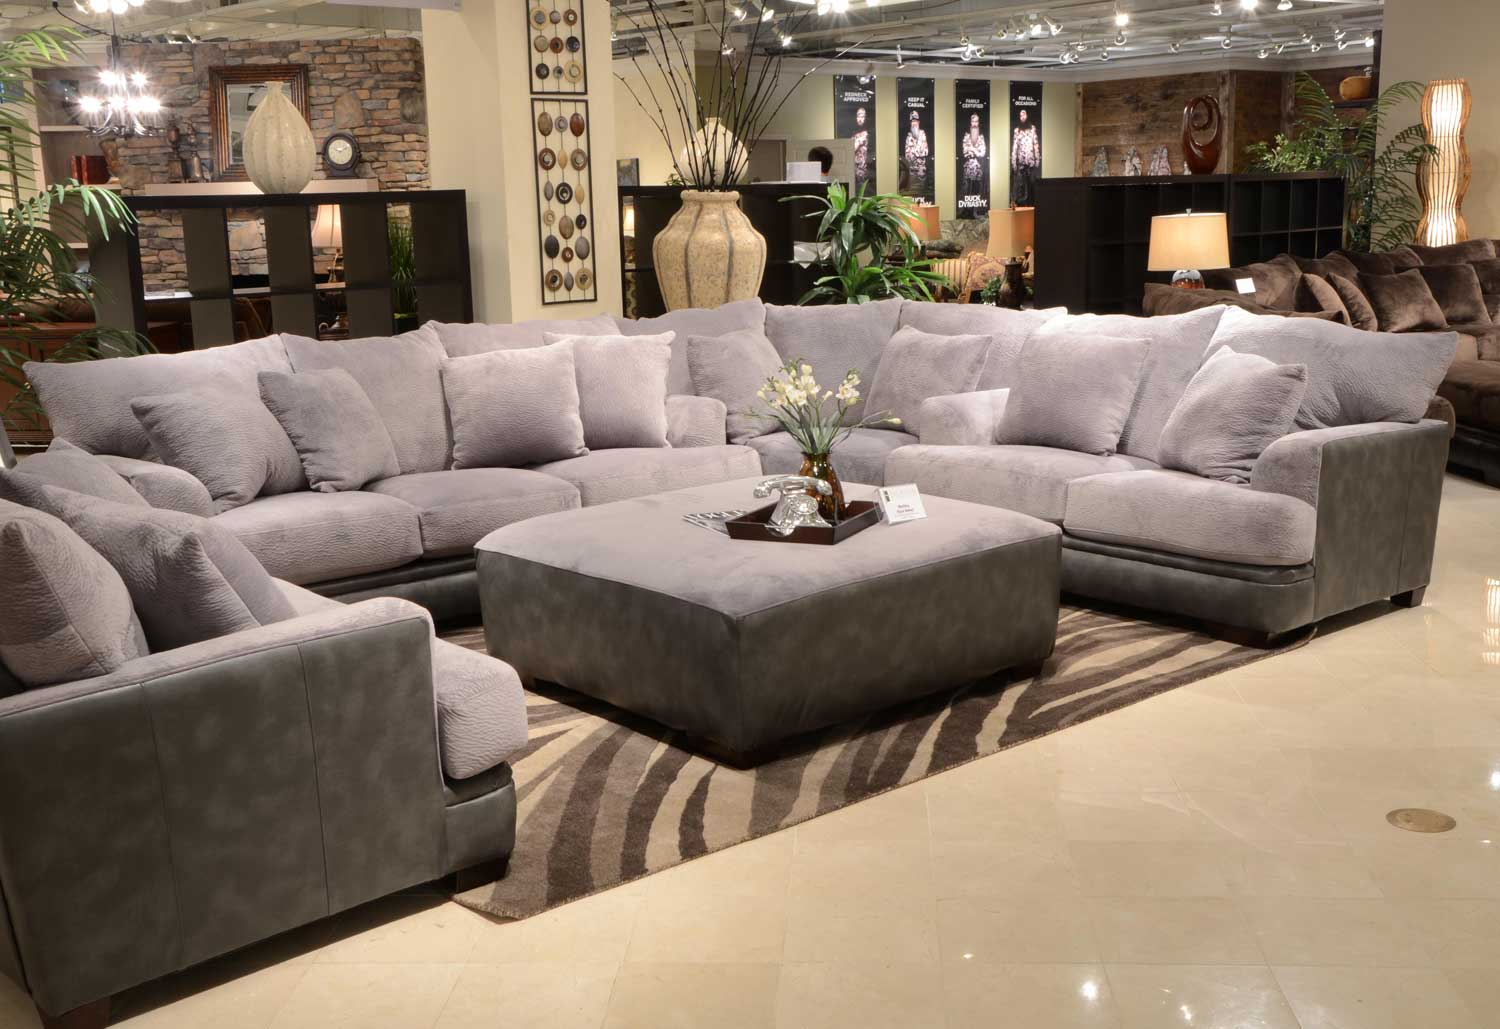 Jackson Barkley Sectional Sofa Set - Grey JF-4442-SECT-SET-Grey at Homelement.com